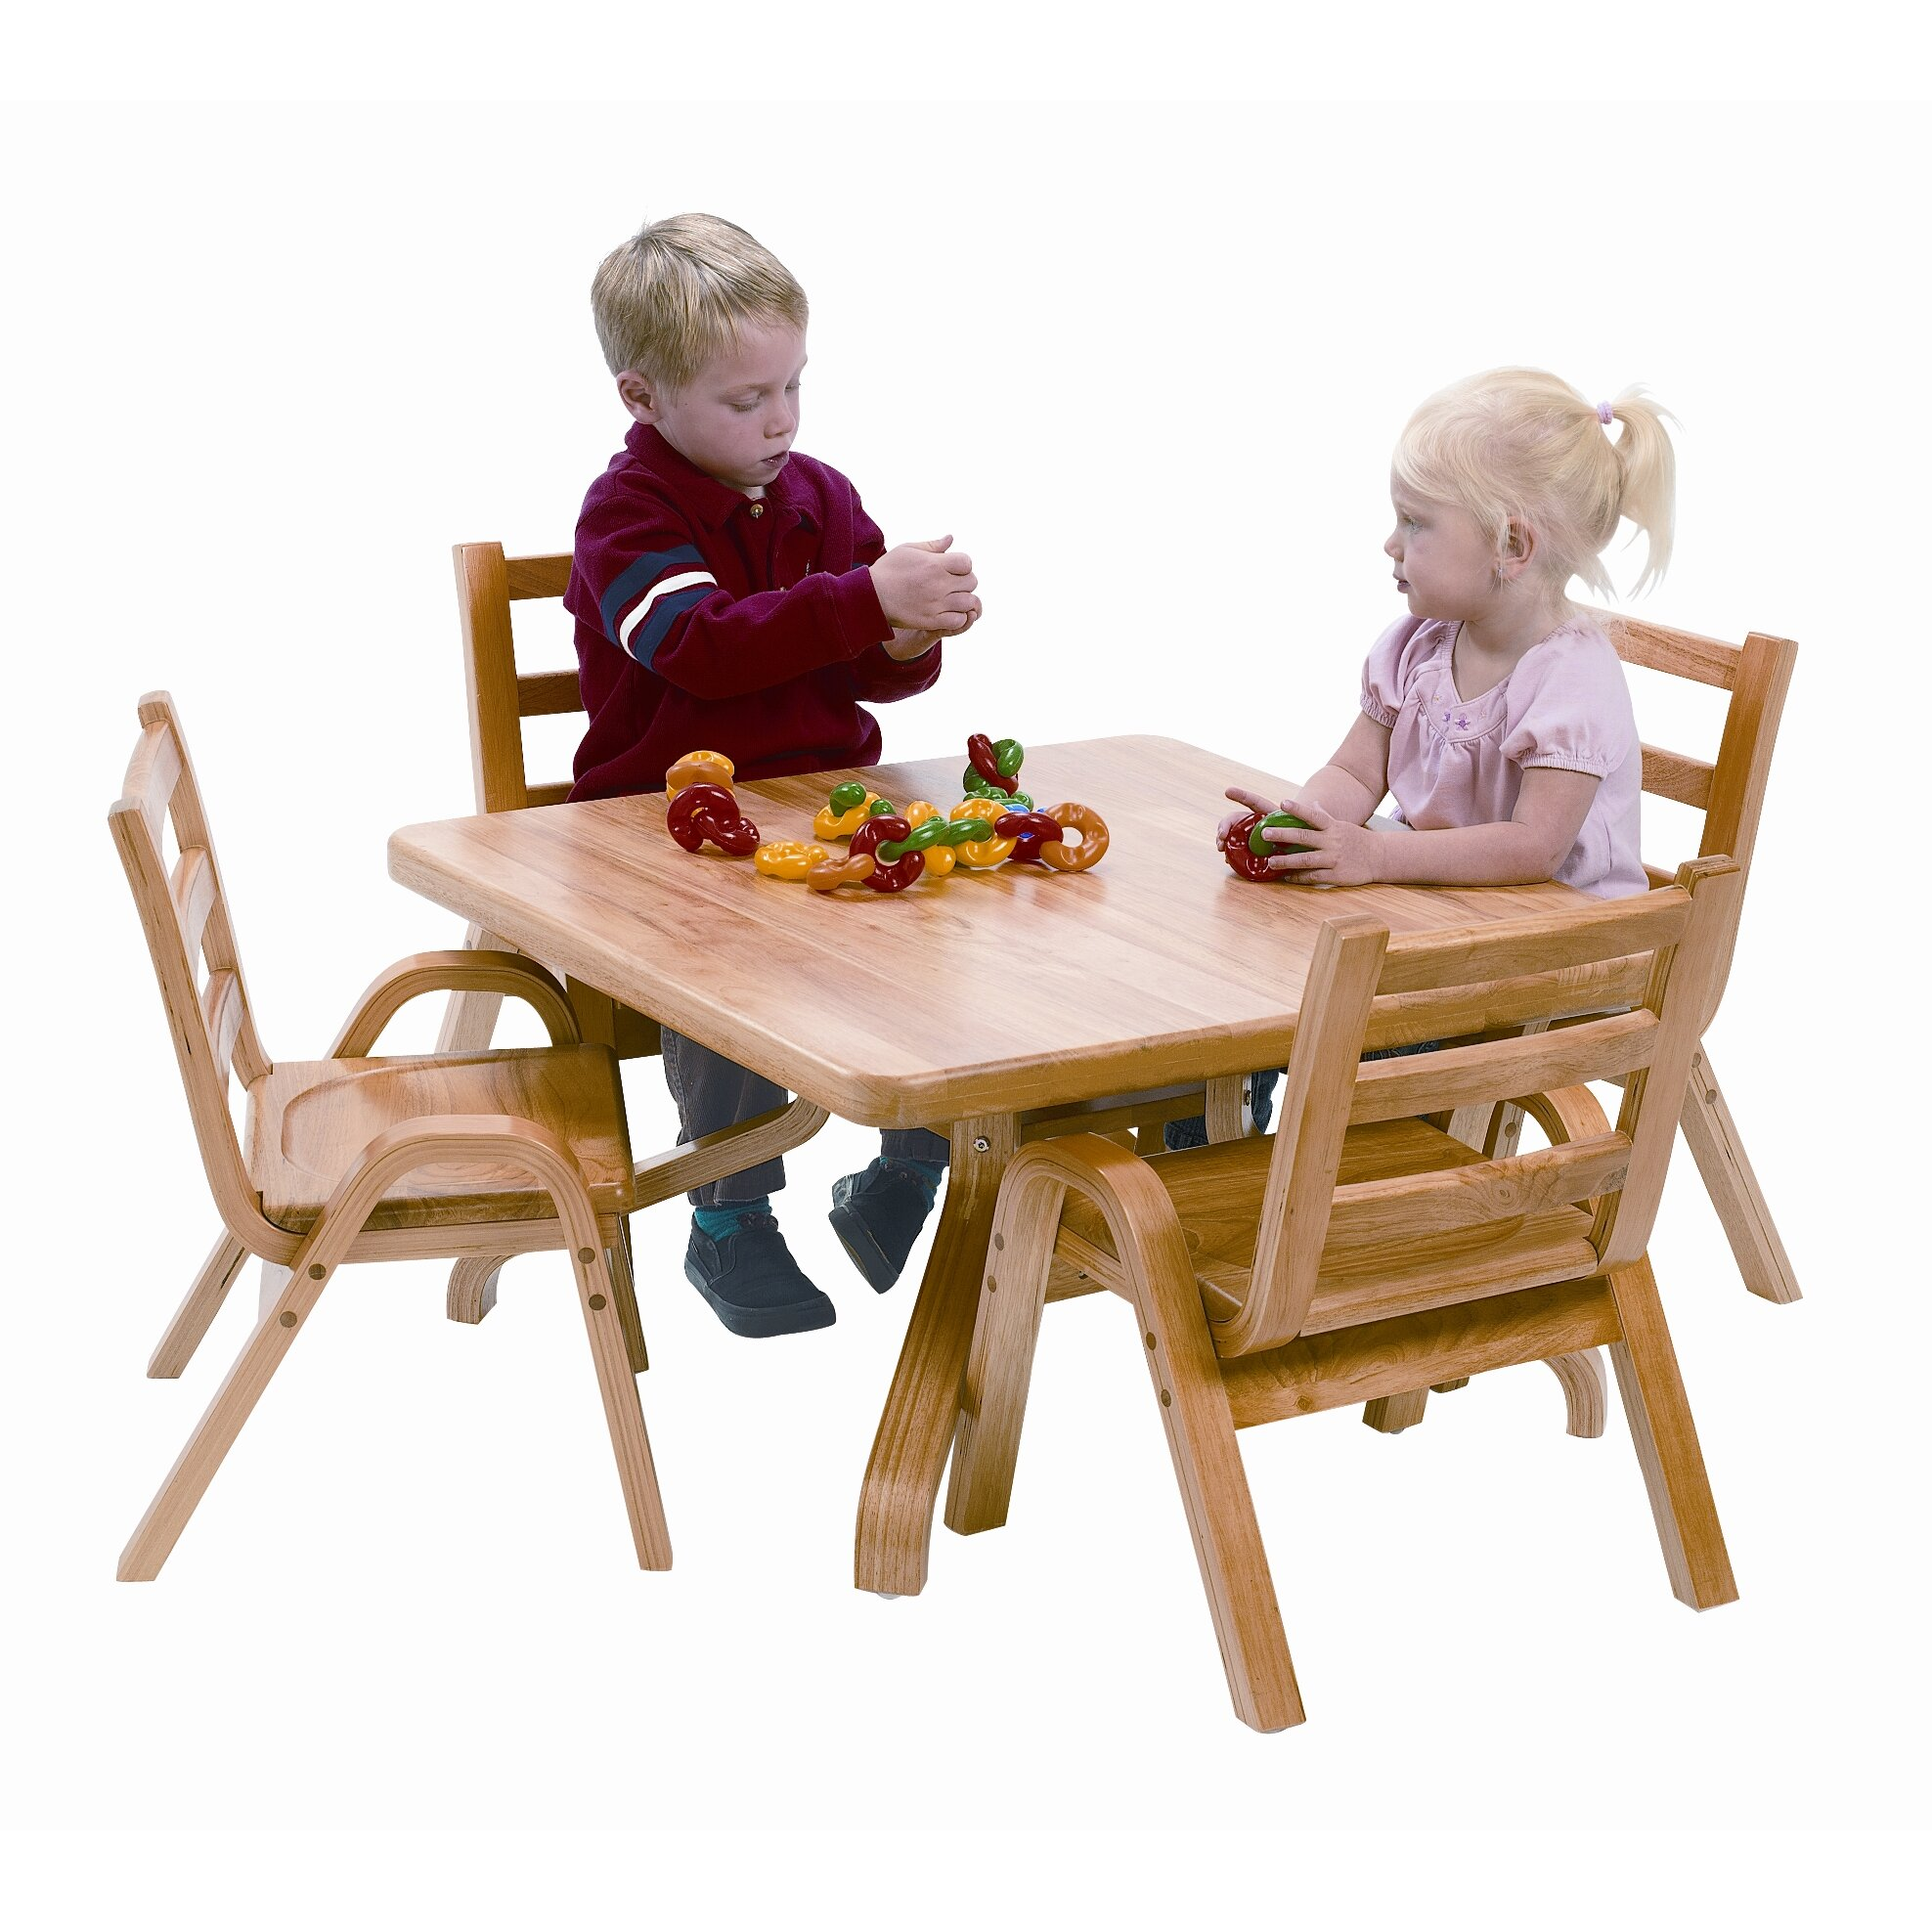 Angeles naturalwood 12 square toddler table and chair set for Table and chair set